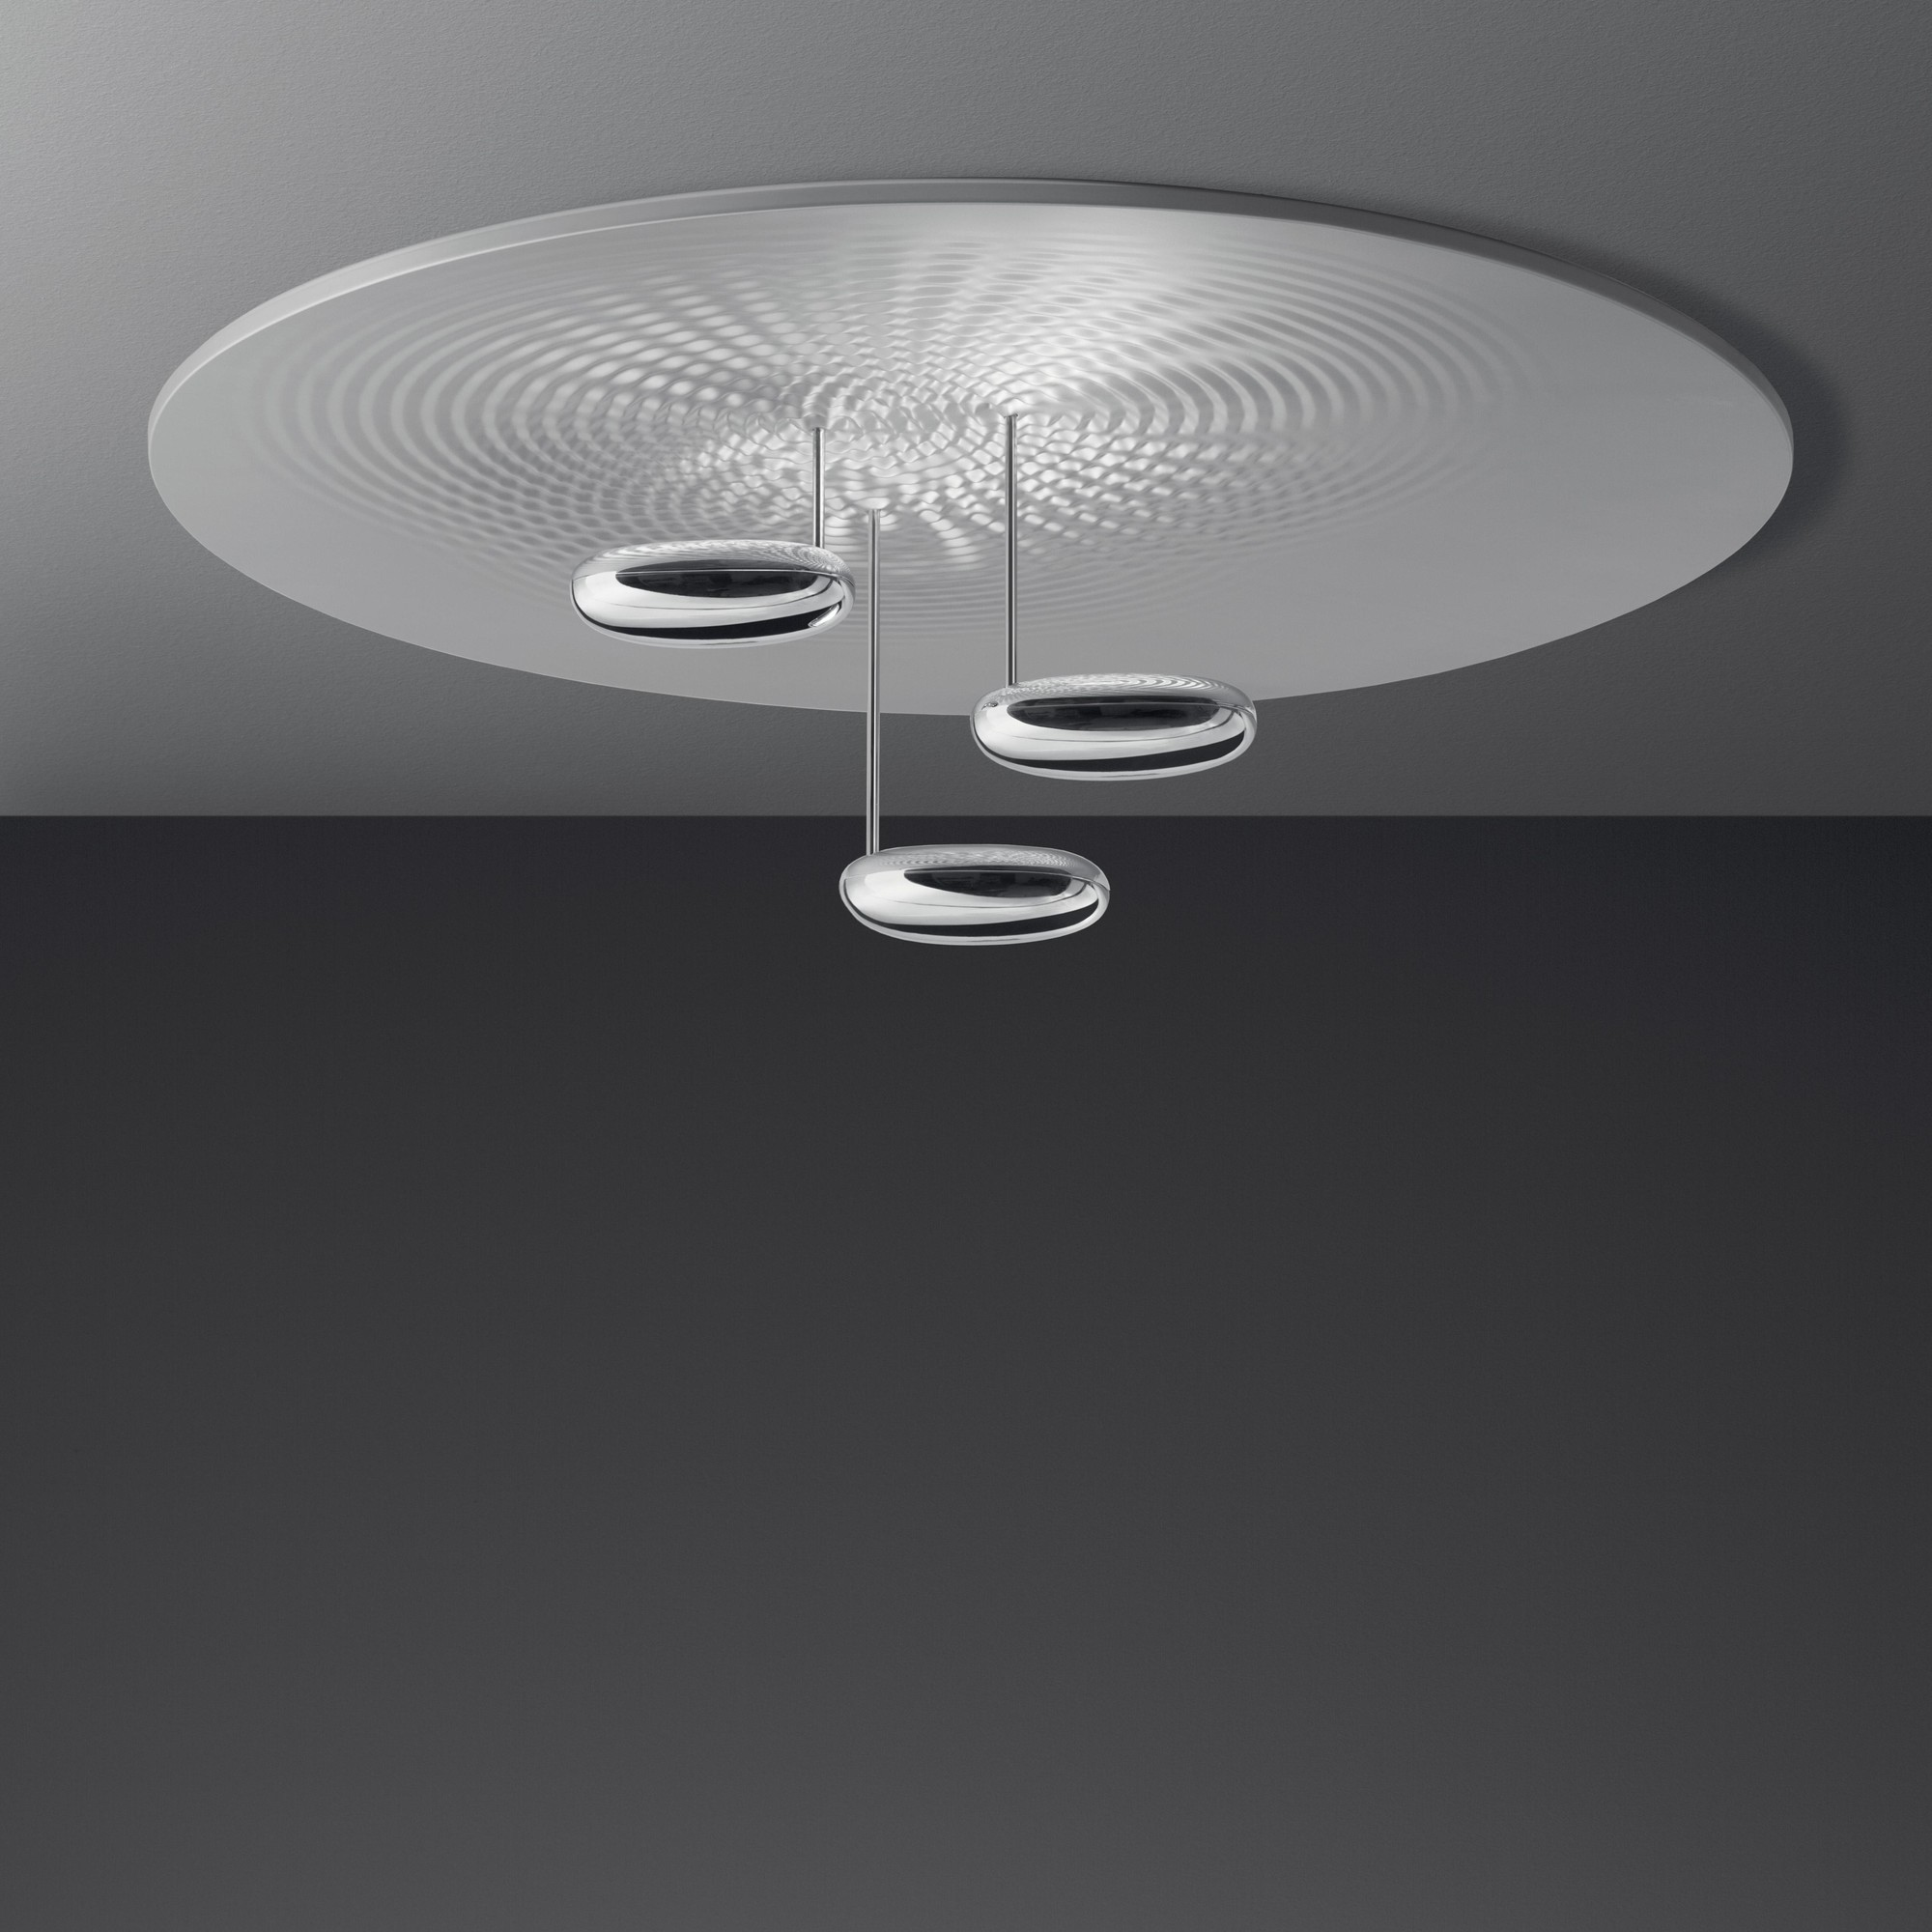 Soffitto A Led.Droplet Soffitto Led Ceiling Lamp